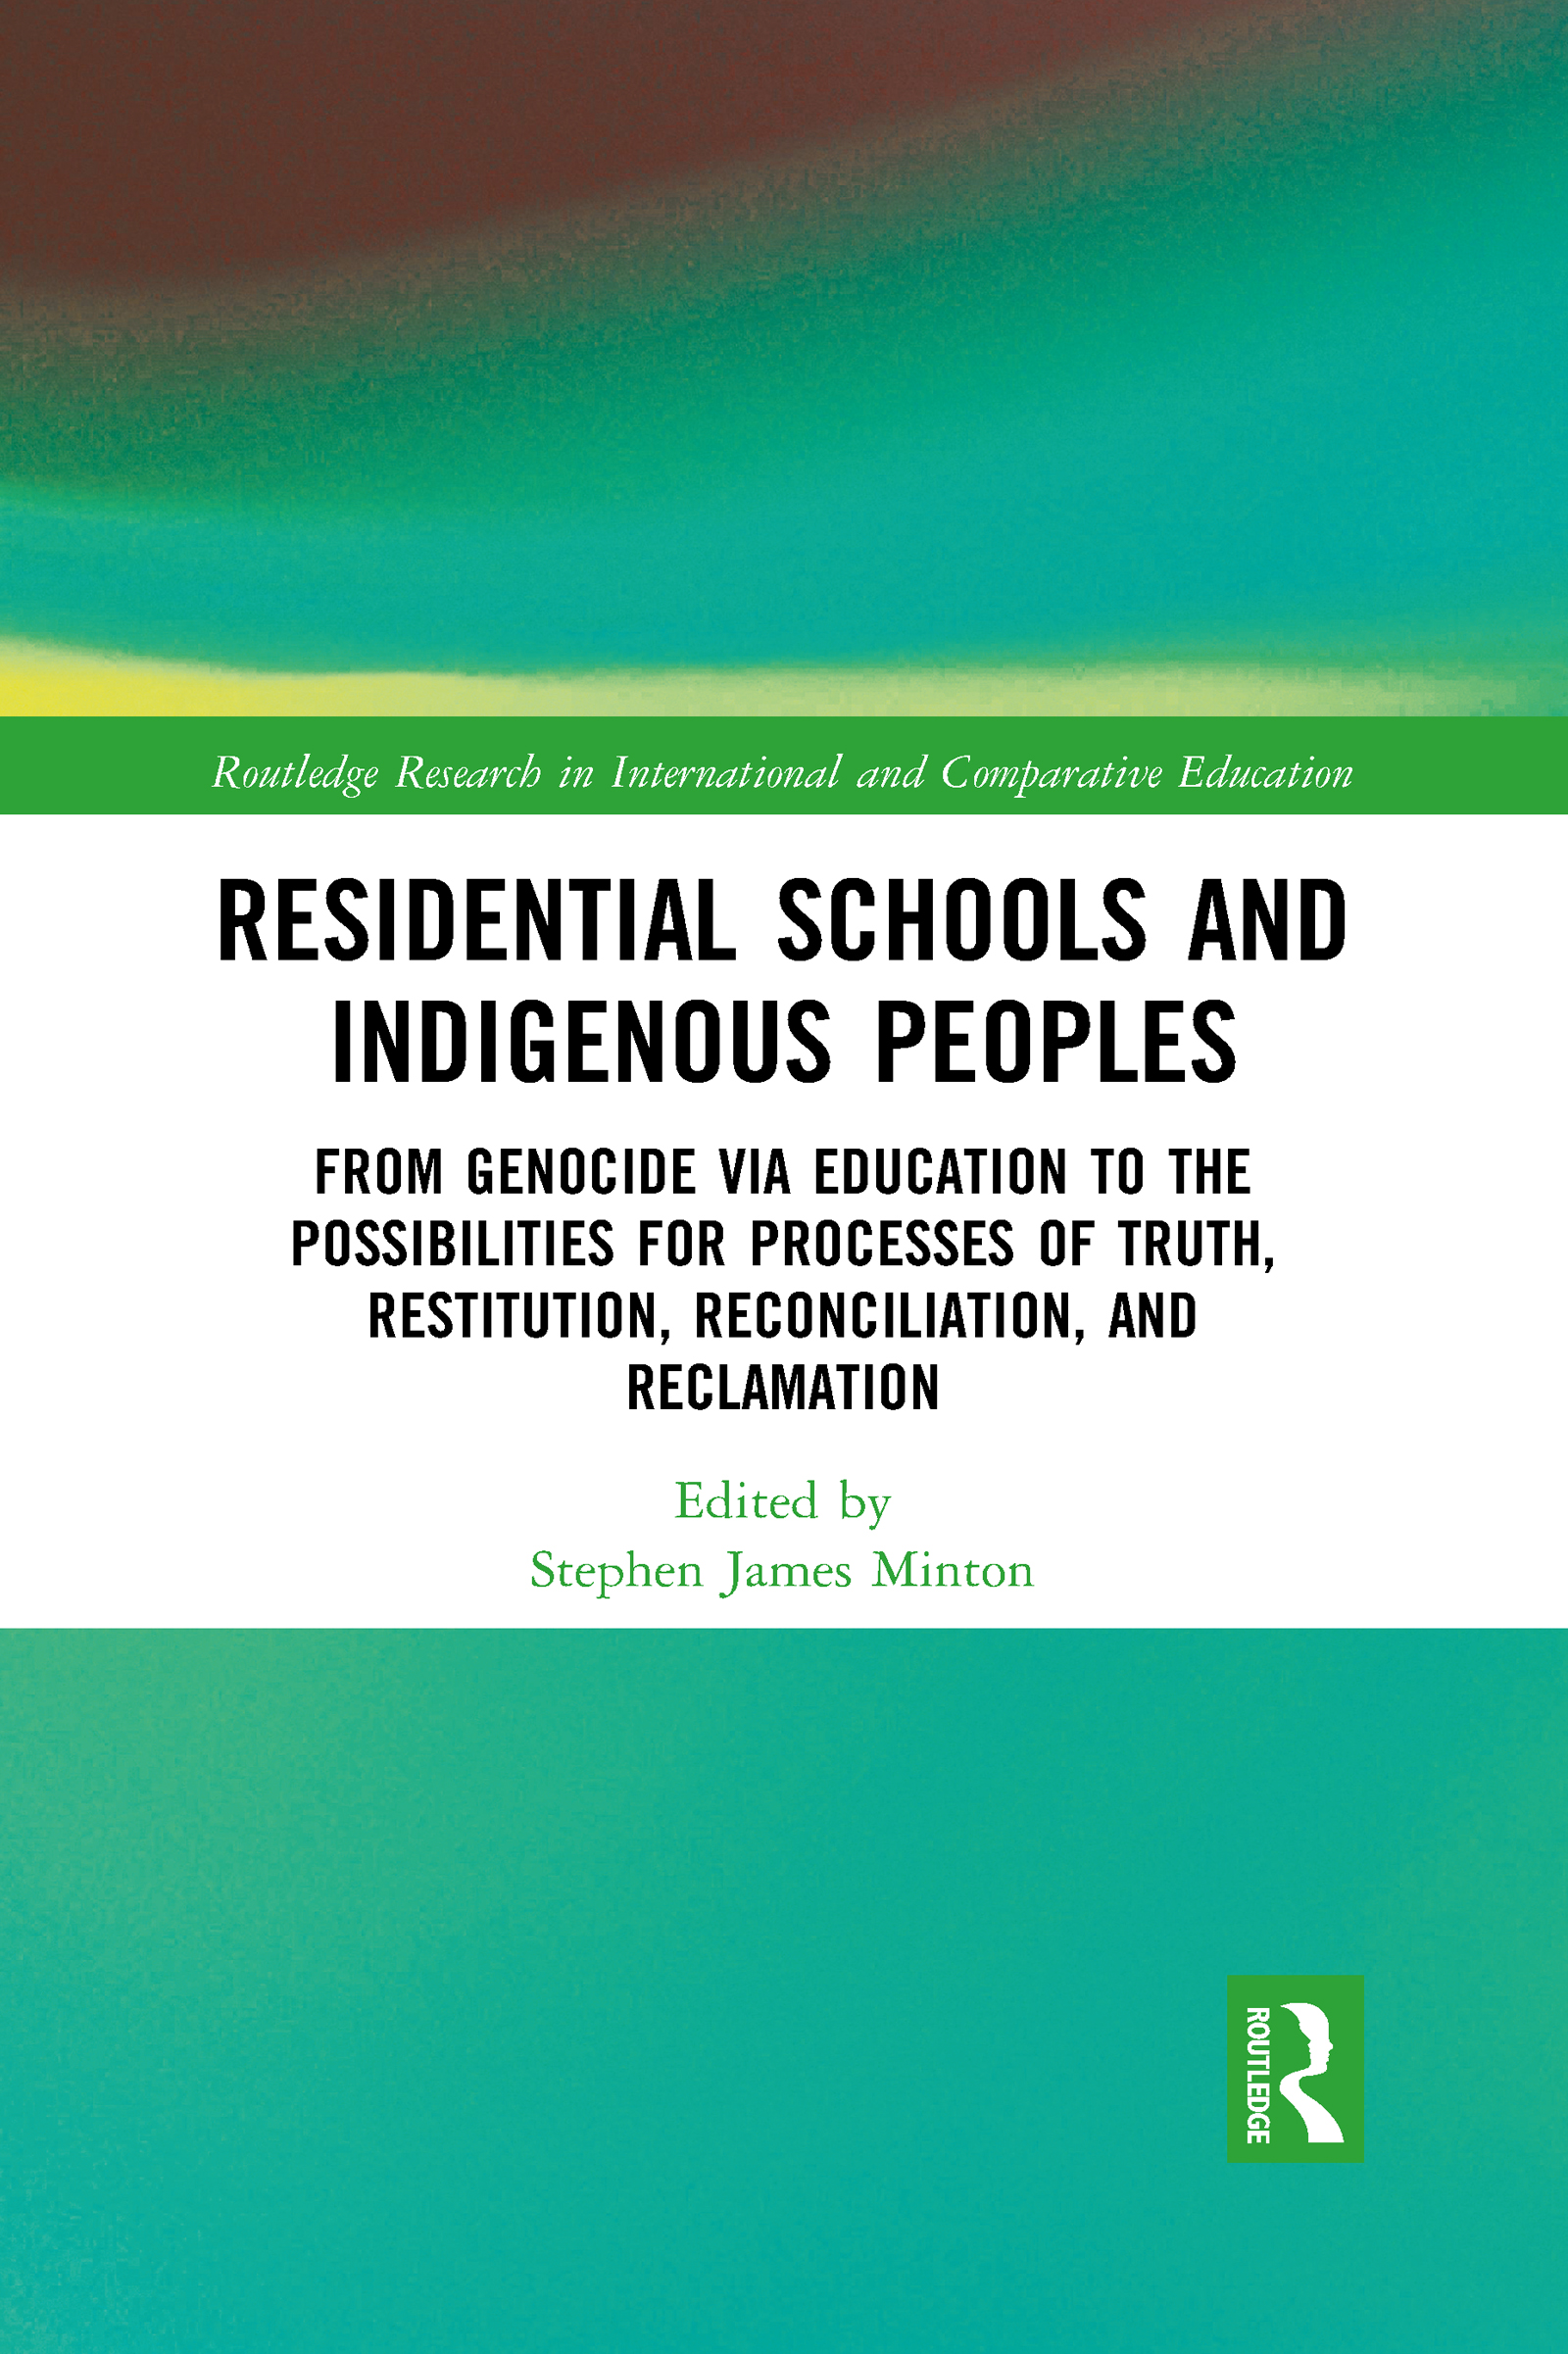 Residential Schools and Indigenous Peoples